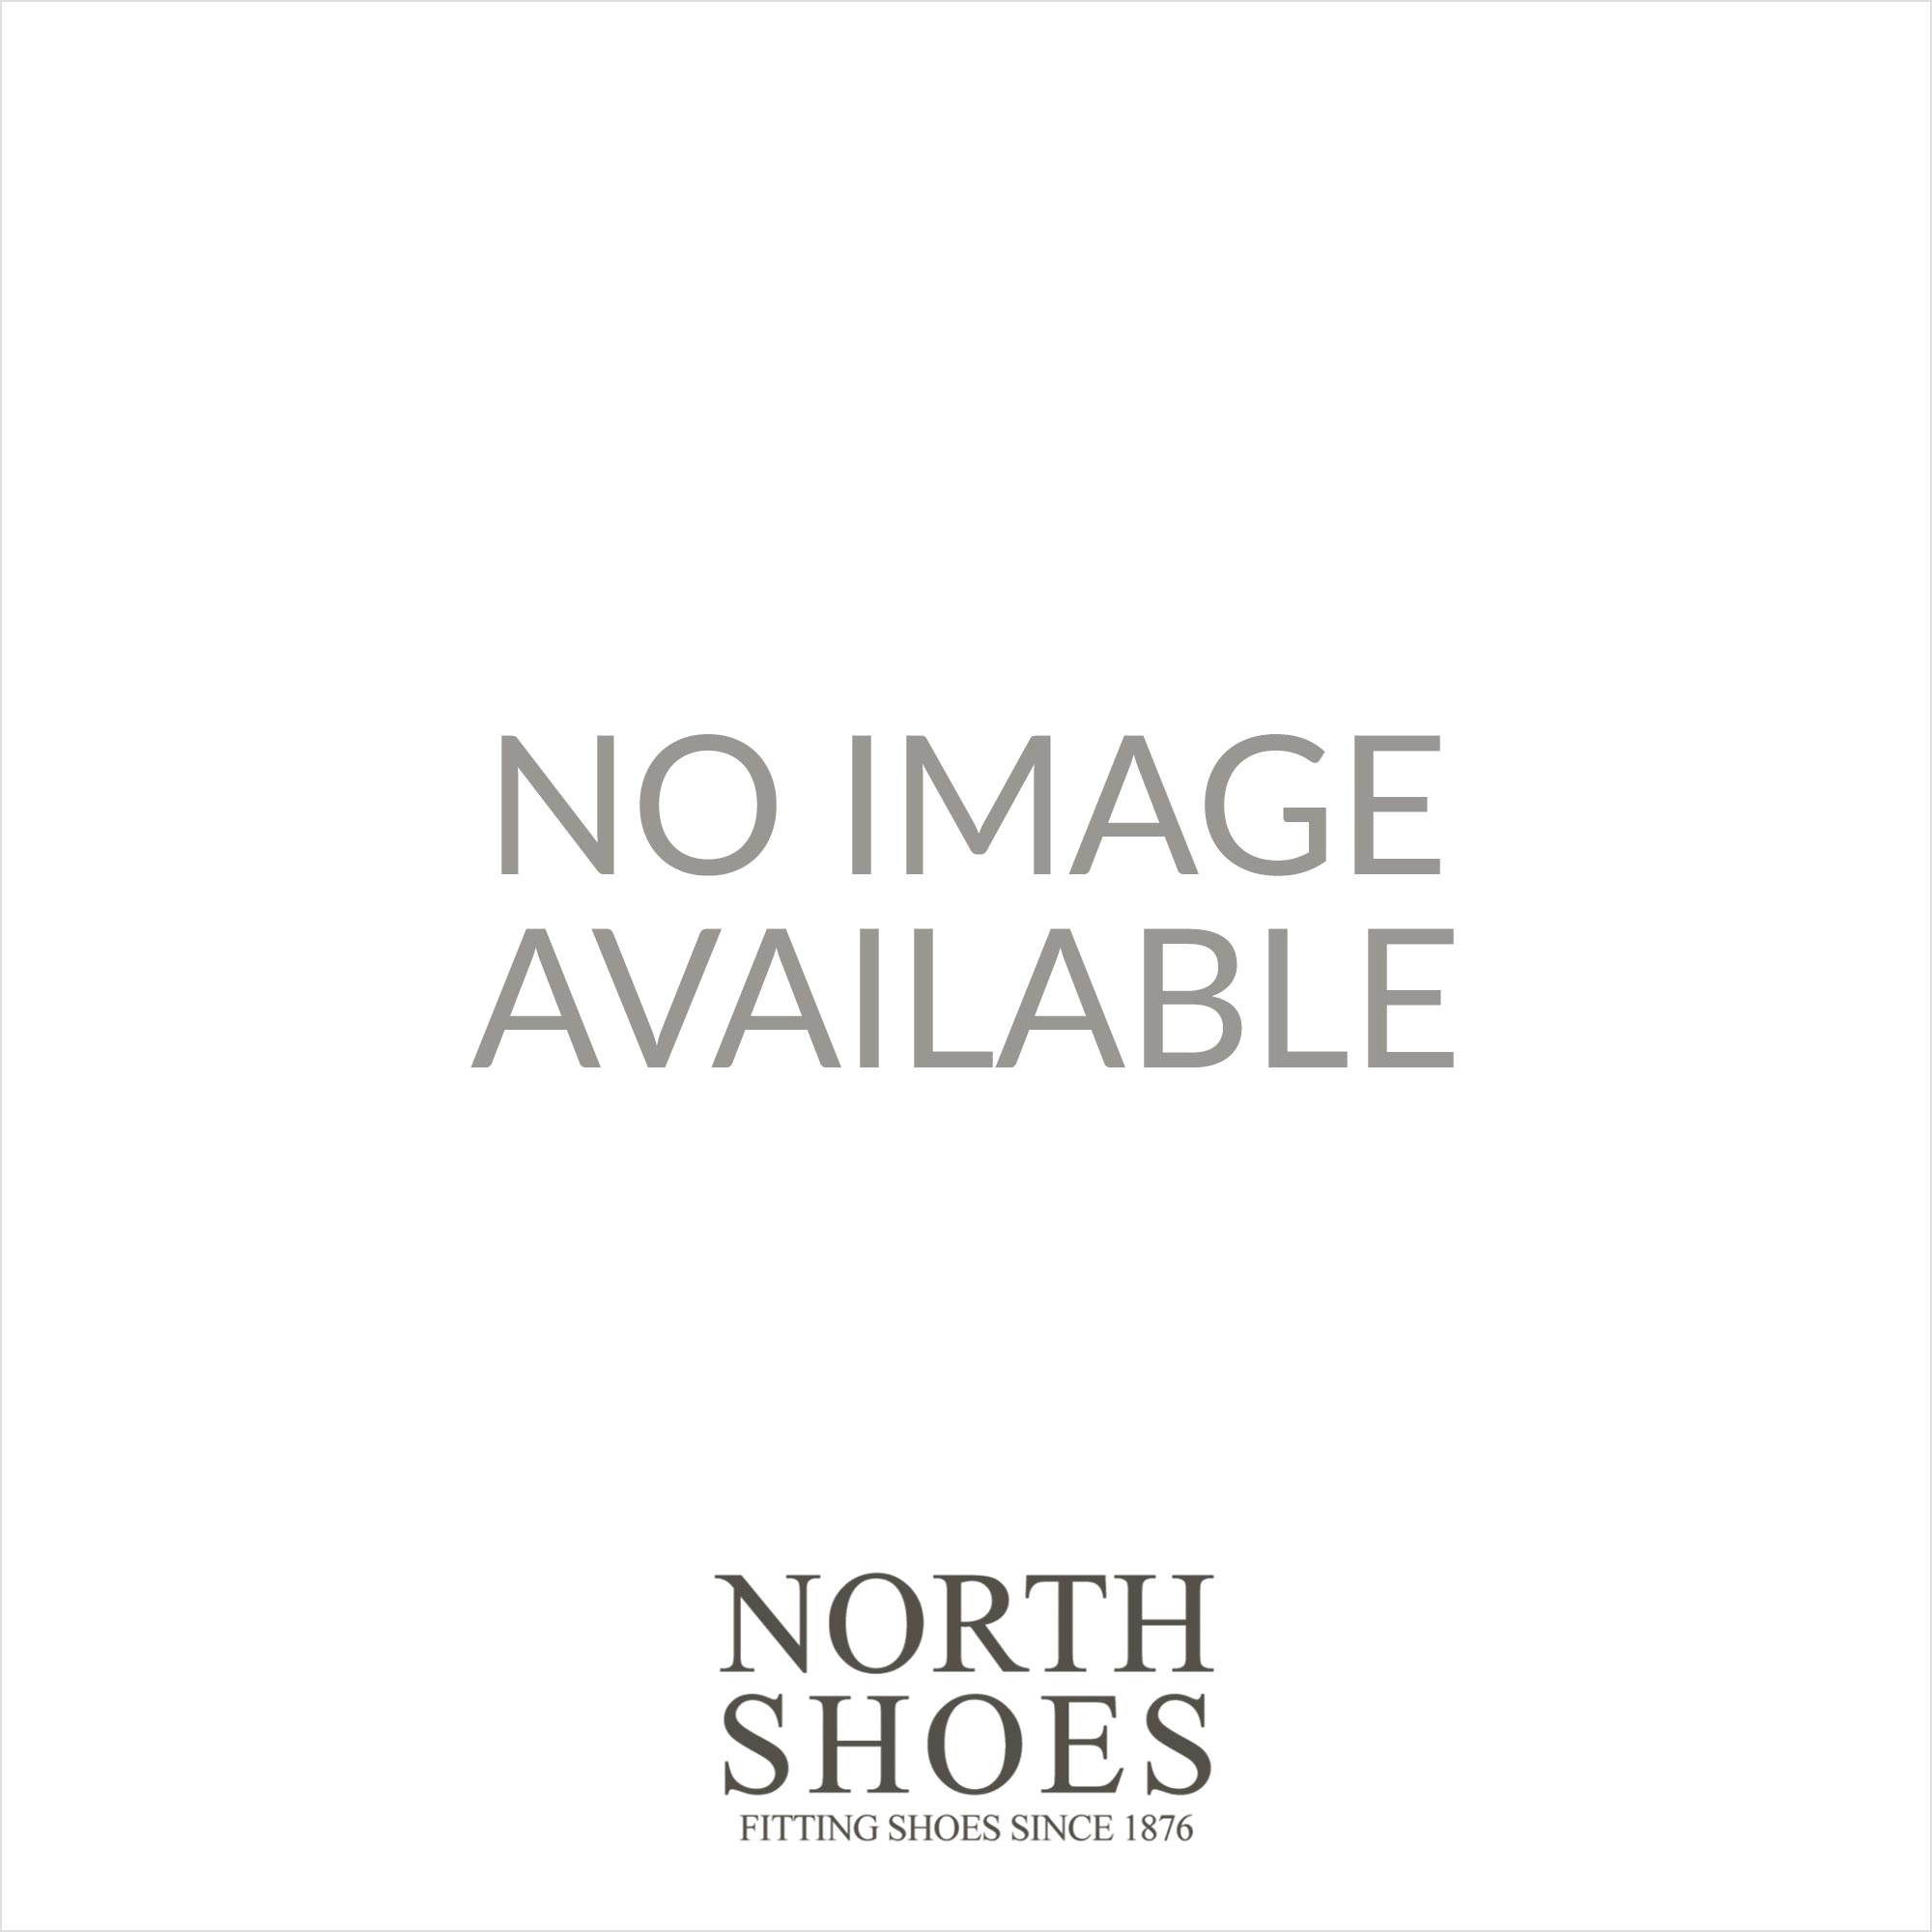 8da2eae80aba62 Clarks Vextor Part Tobacco Mens Sandal - Clarks from North Shoes UK